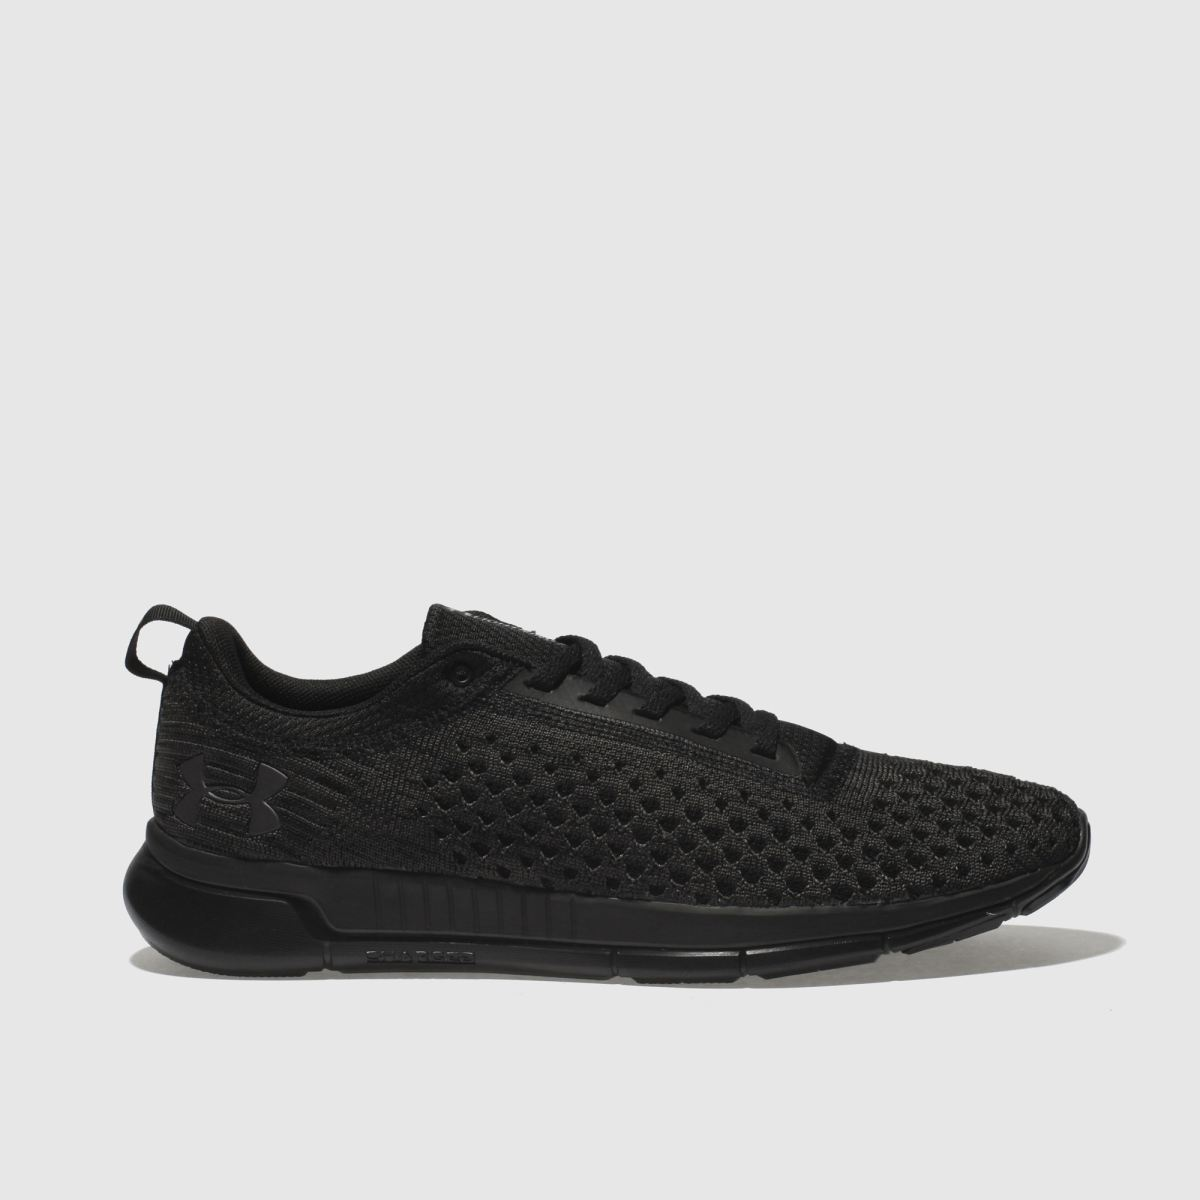 Under Armour Black Lightning 2 Trainers